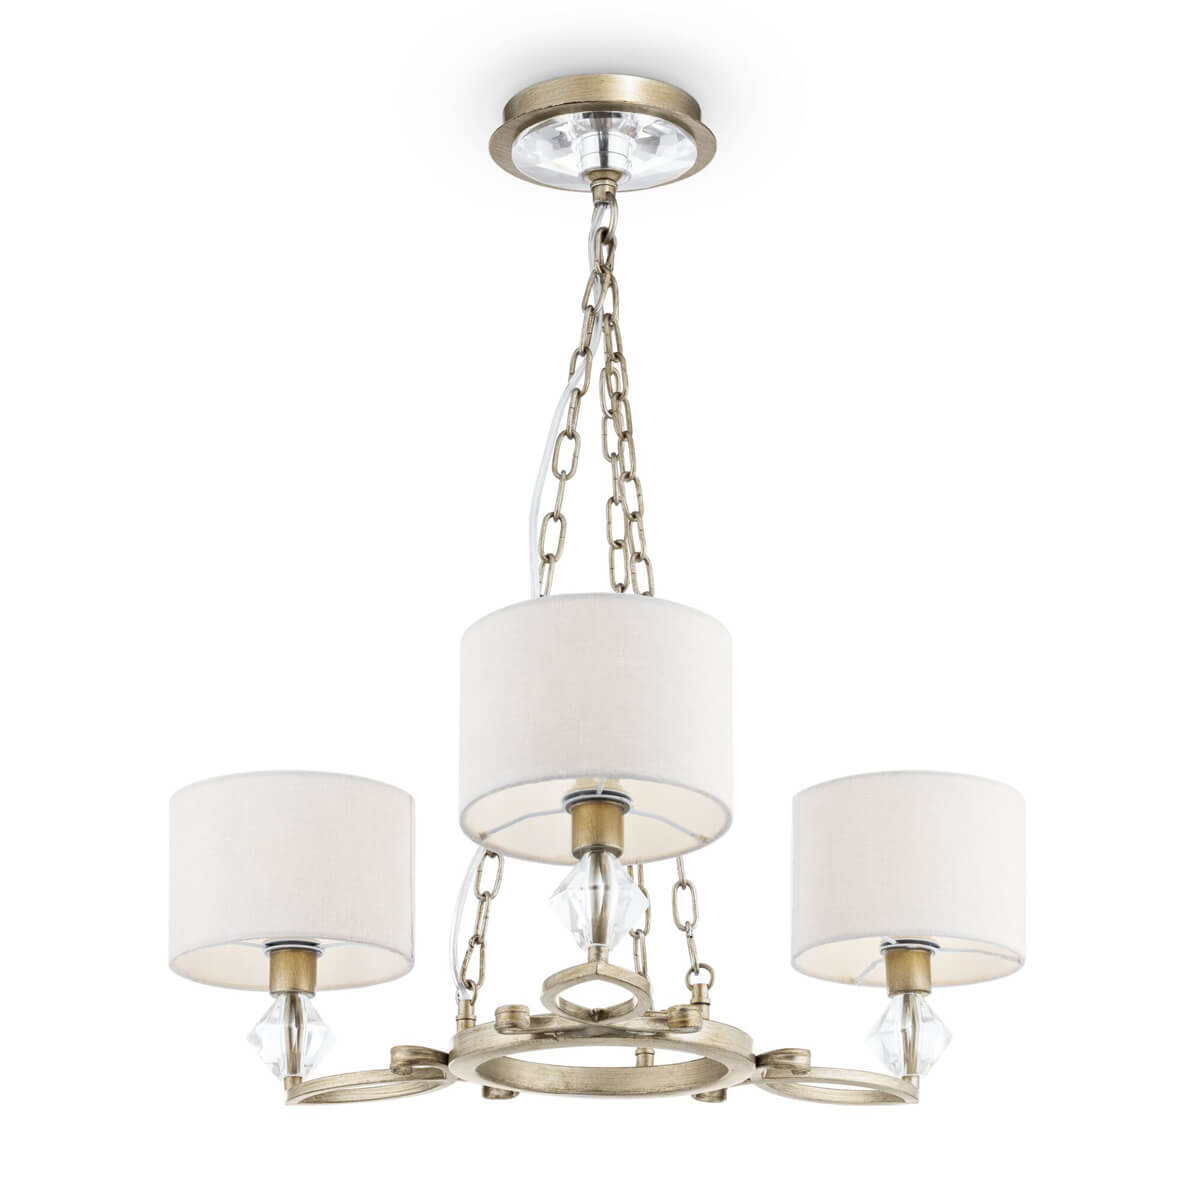 Люстра Maytoni H006PL-03G Luxe